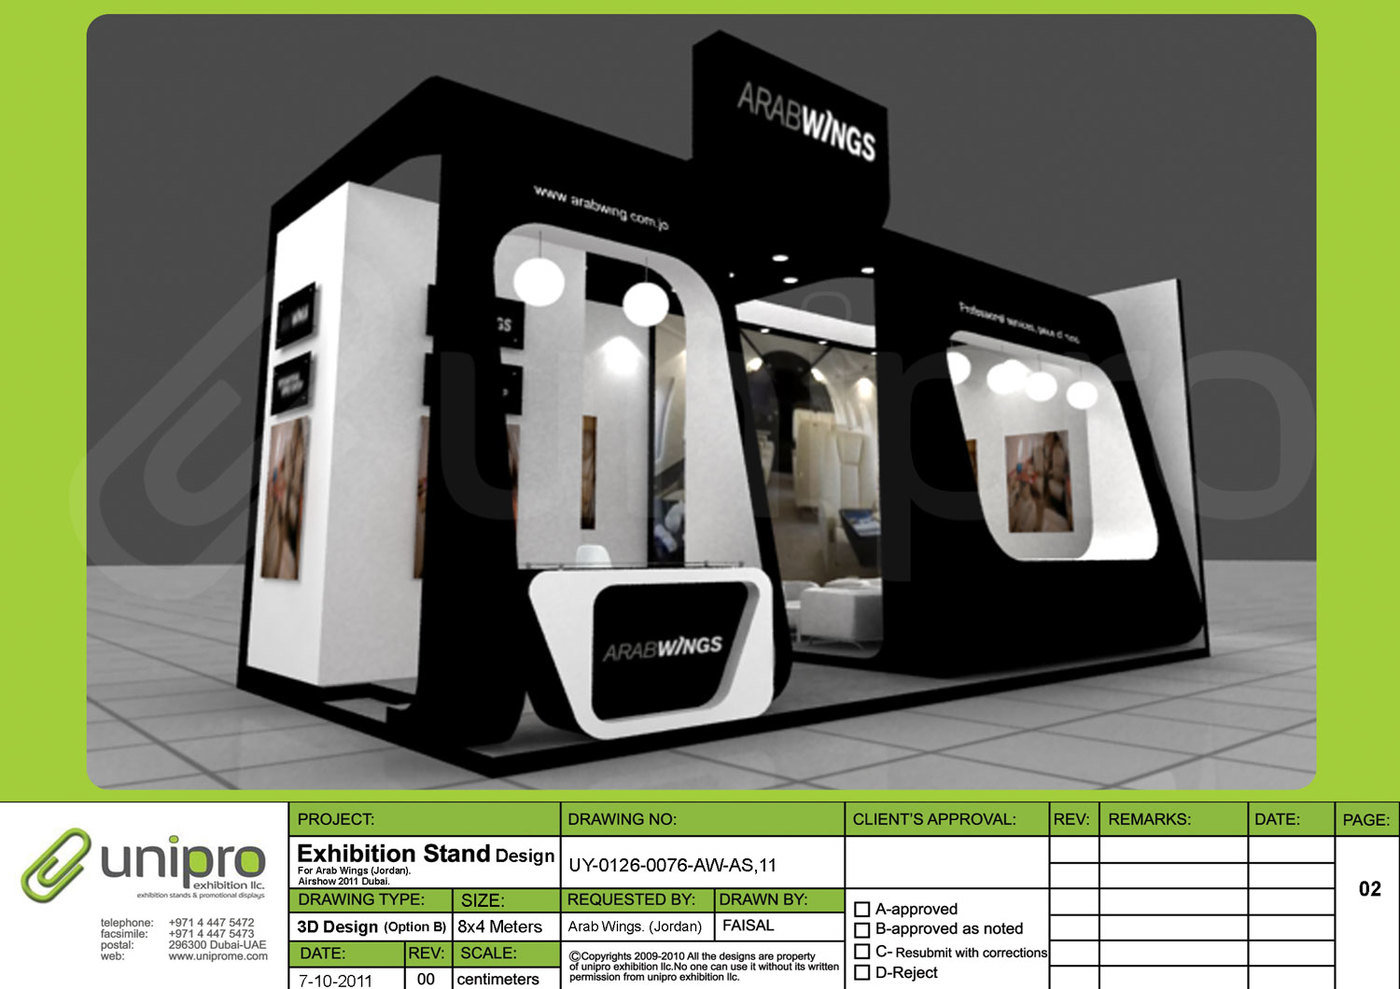 3d Exhibition Stand Design Jobs In Dubai : D exhibition stand designs by mohammad yawar khan at coroflot